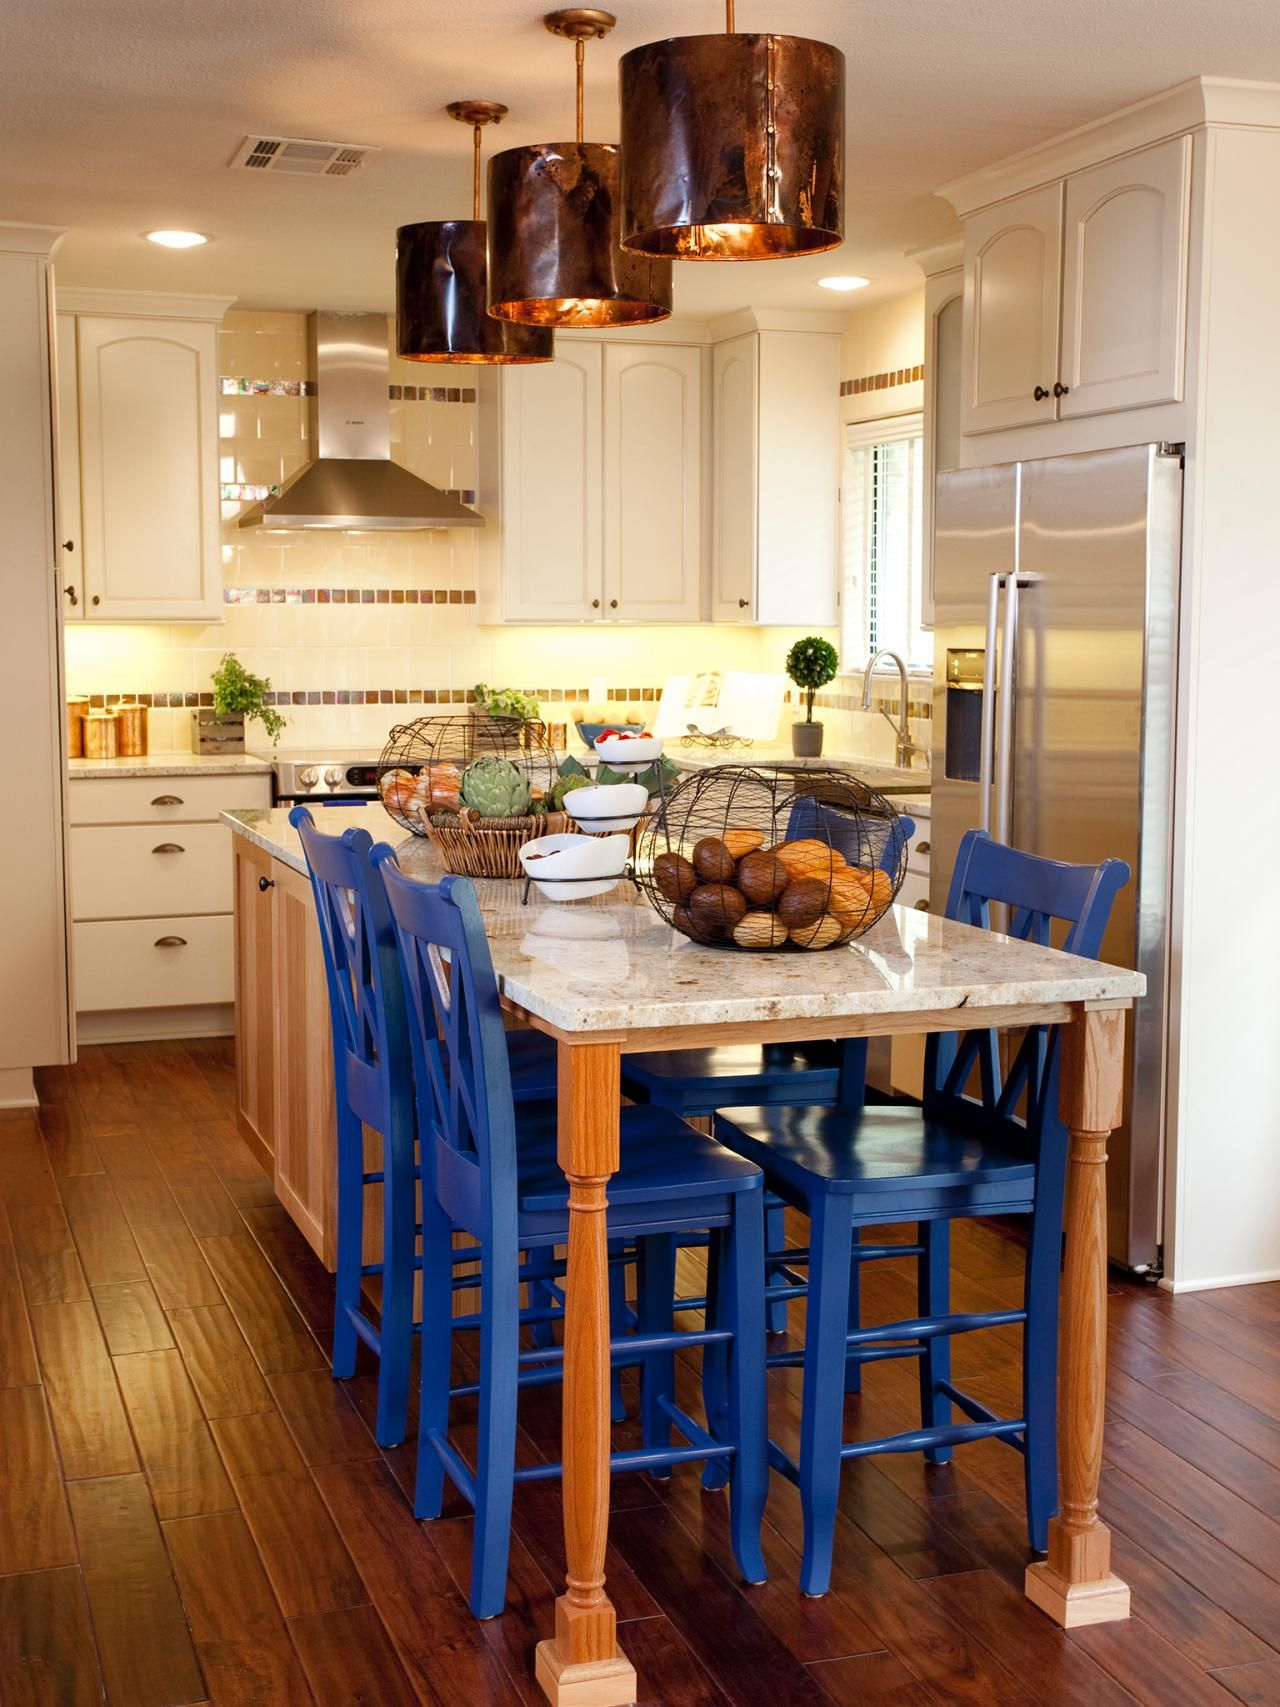 White Kitchen With Spacious Island And Blue Chairs Chairs For Kitchen Island Small Kitchen Tables Kitchen Island Table